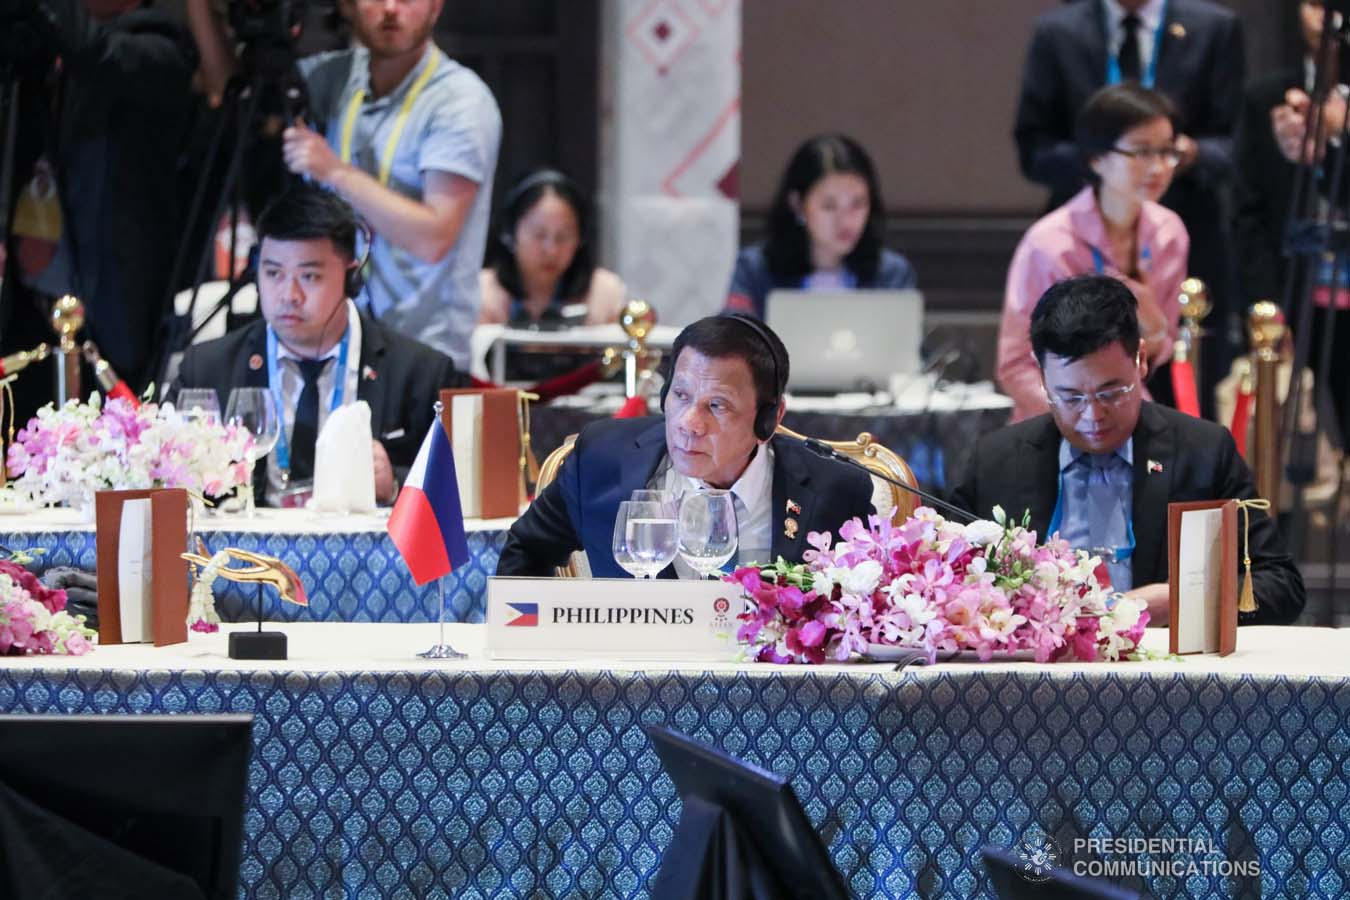 President Rodrigo Roa Duterte joins other leaders during the Special Lunch on Sustainable Development at the Impact Exhibition and Convention Center in Nonthaburi, Thailand on November 4, 2019. AVITO DALAN/PRESIDENTIAL PHOTO